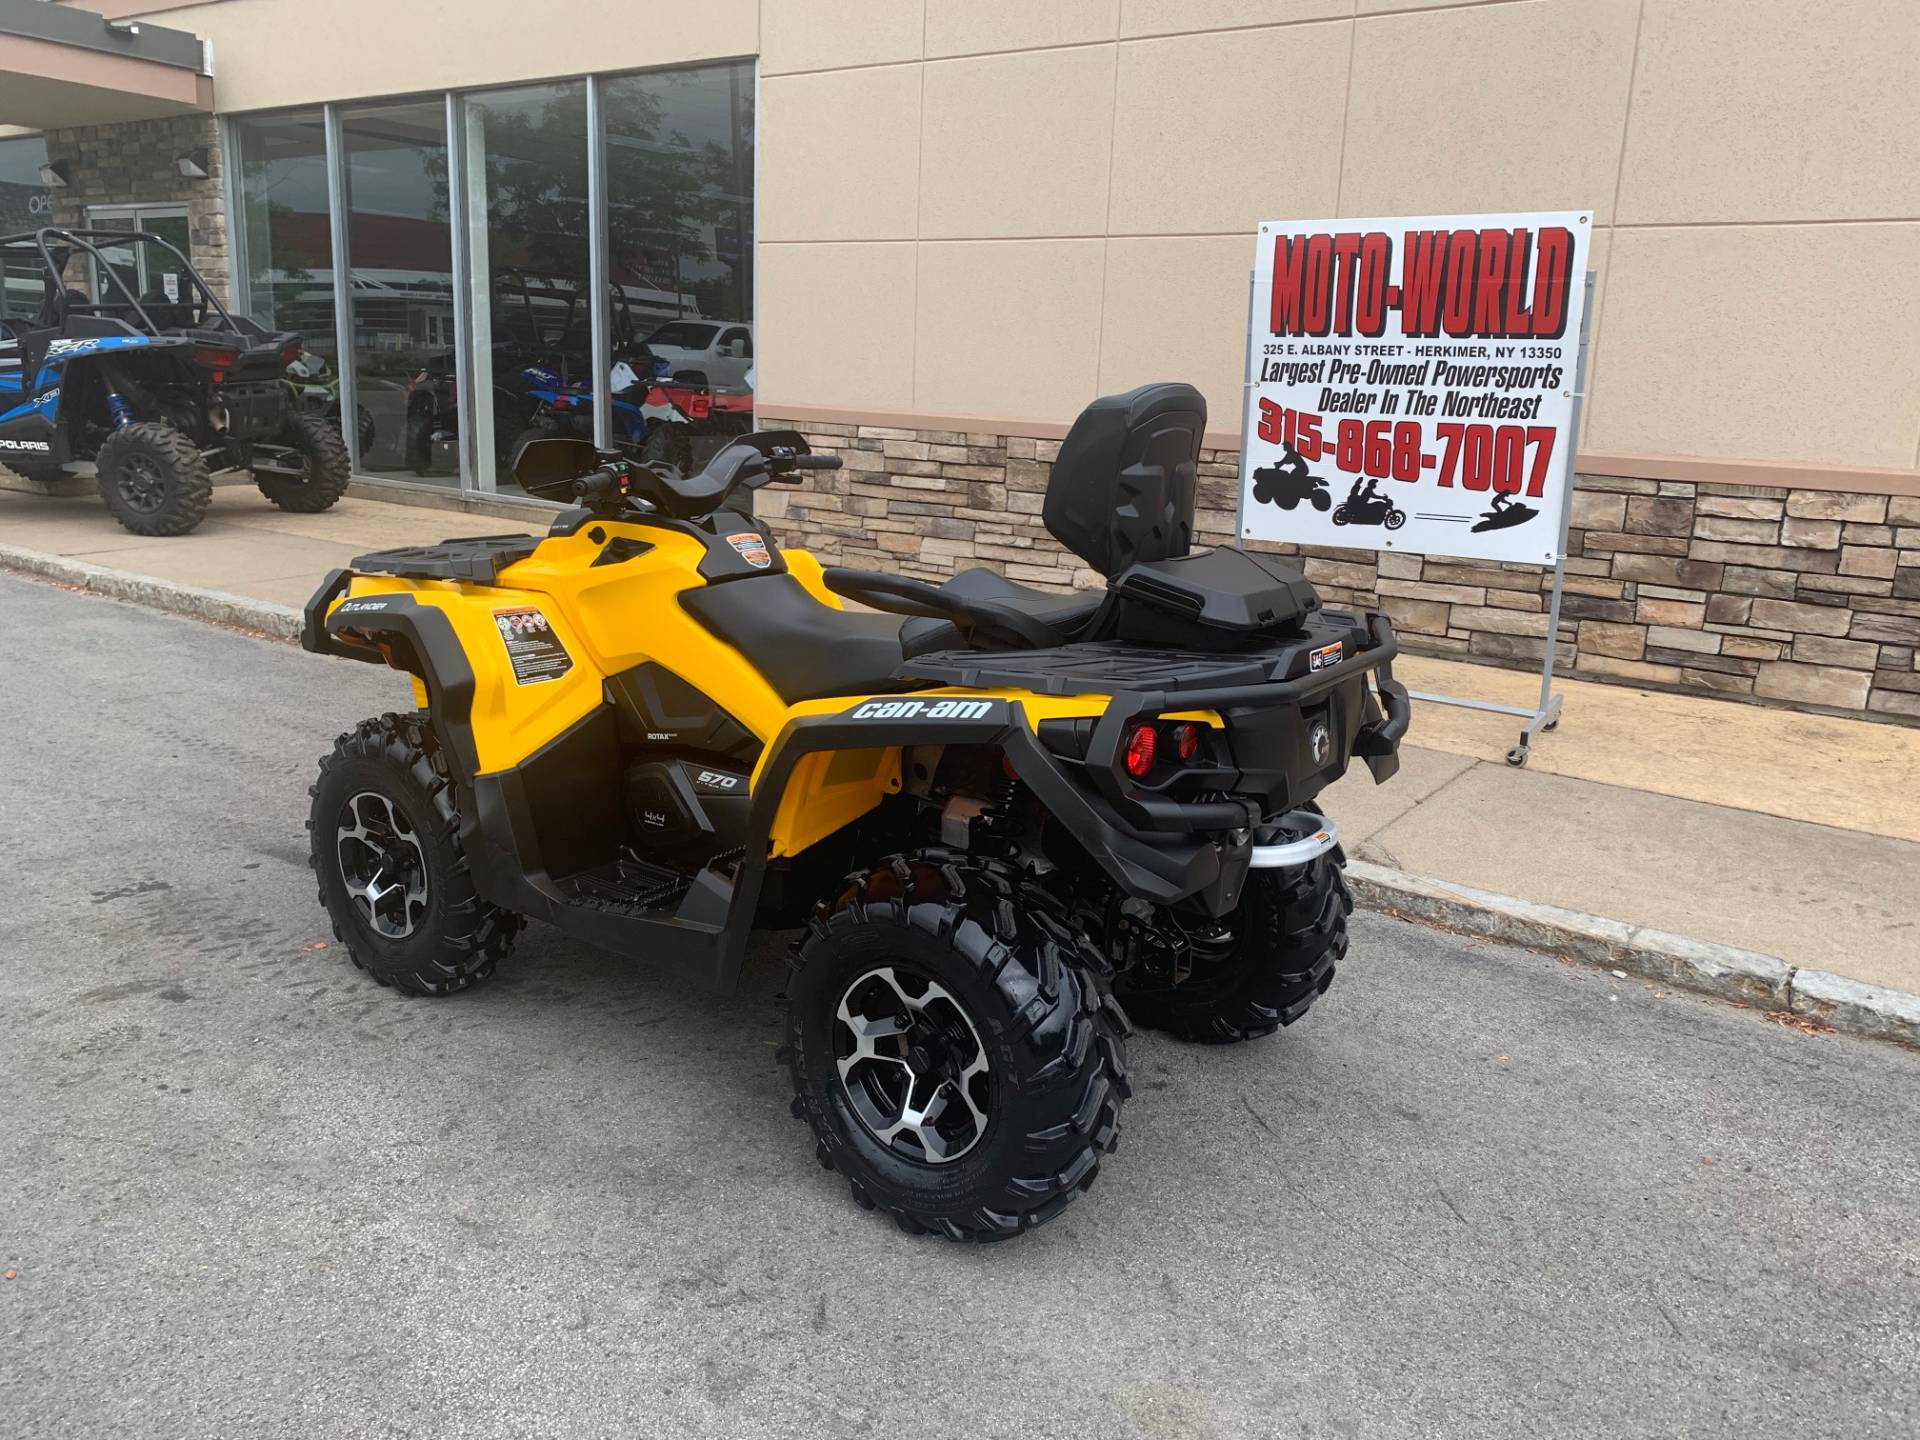 2016 Can-Am Outlander MAX XT 570 in Herkimer, New York - Photo 5